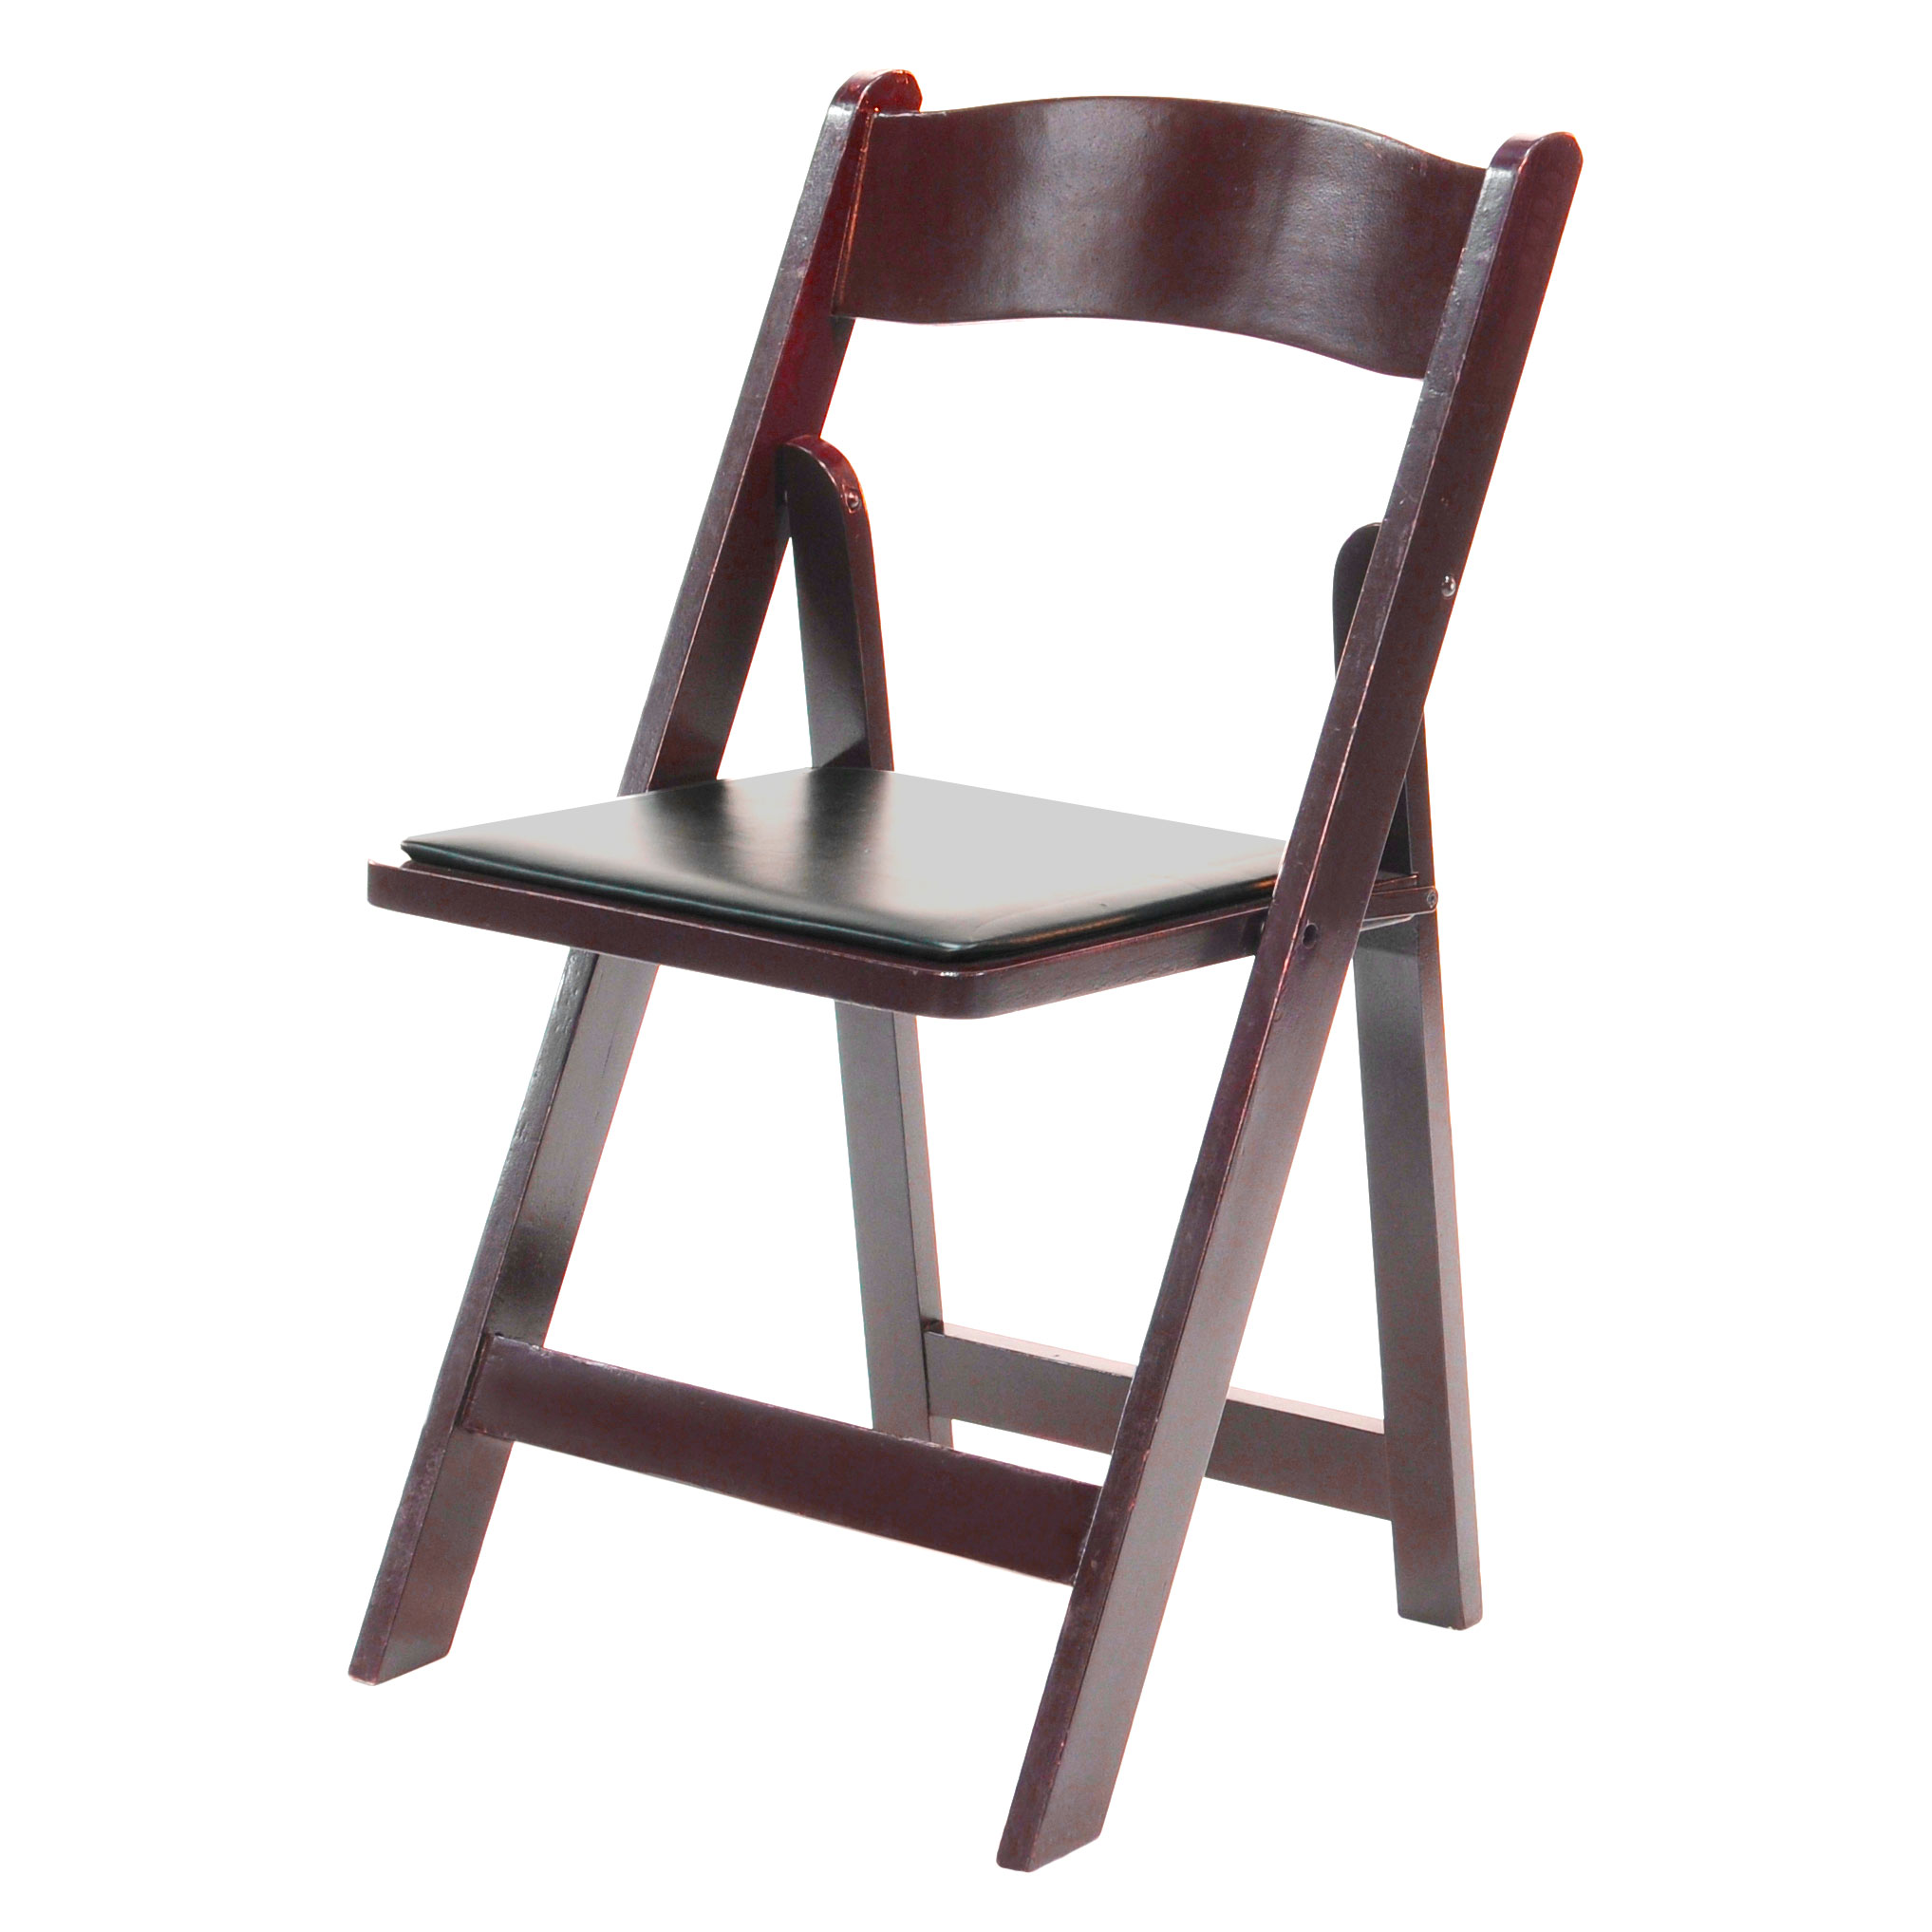 Wood Folding Chair Mahogany Frame, Black Pad  www.Raphaels.com - Call to place your rental order today! 858-689-7368 - www.raphaels.com